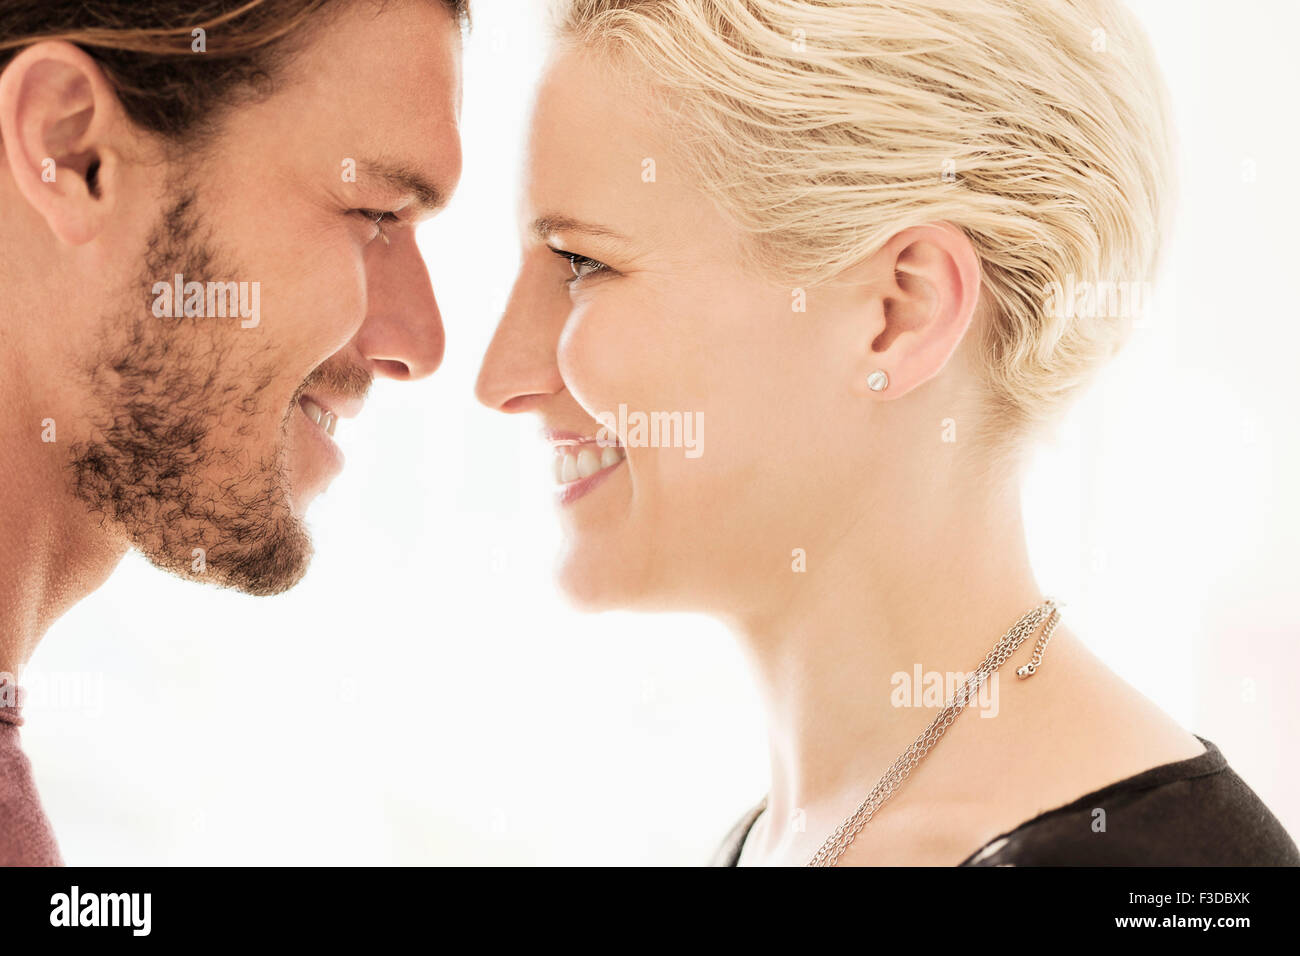 Couple face to face on white background - Stock Image